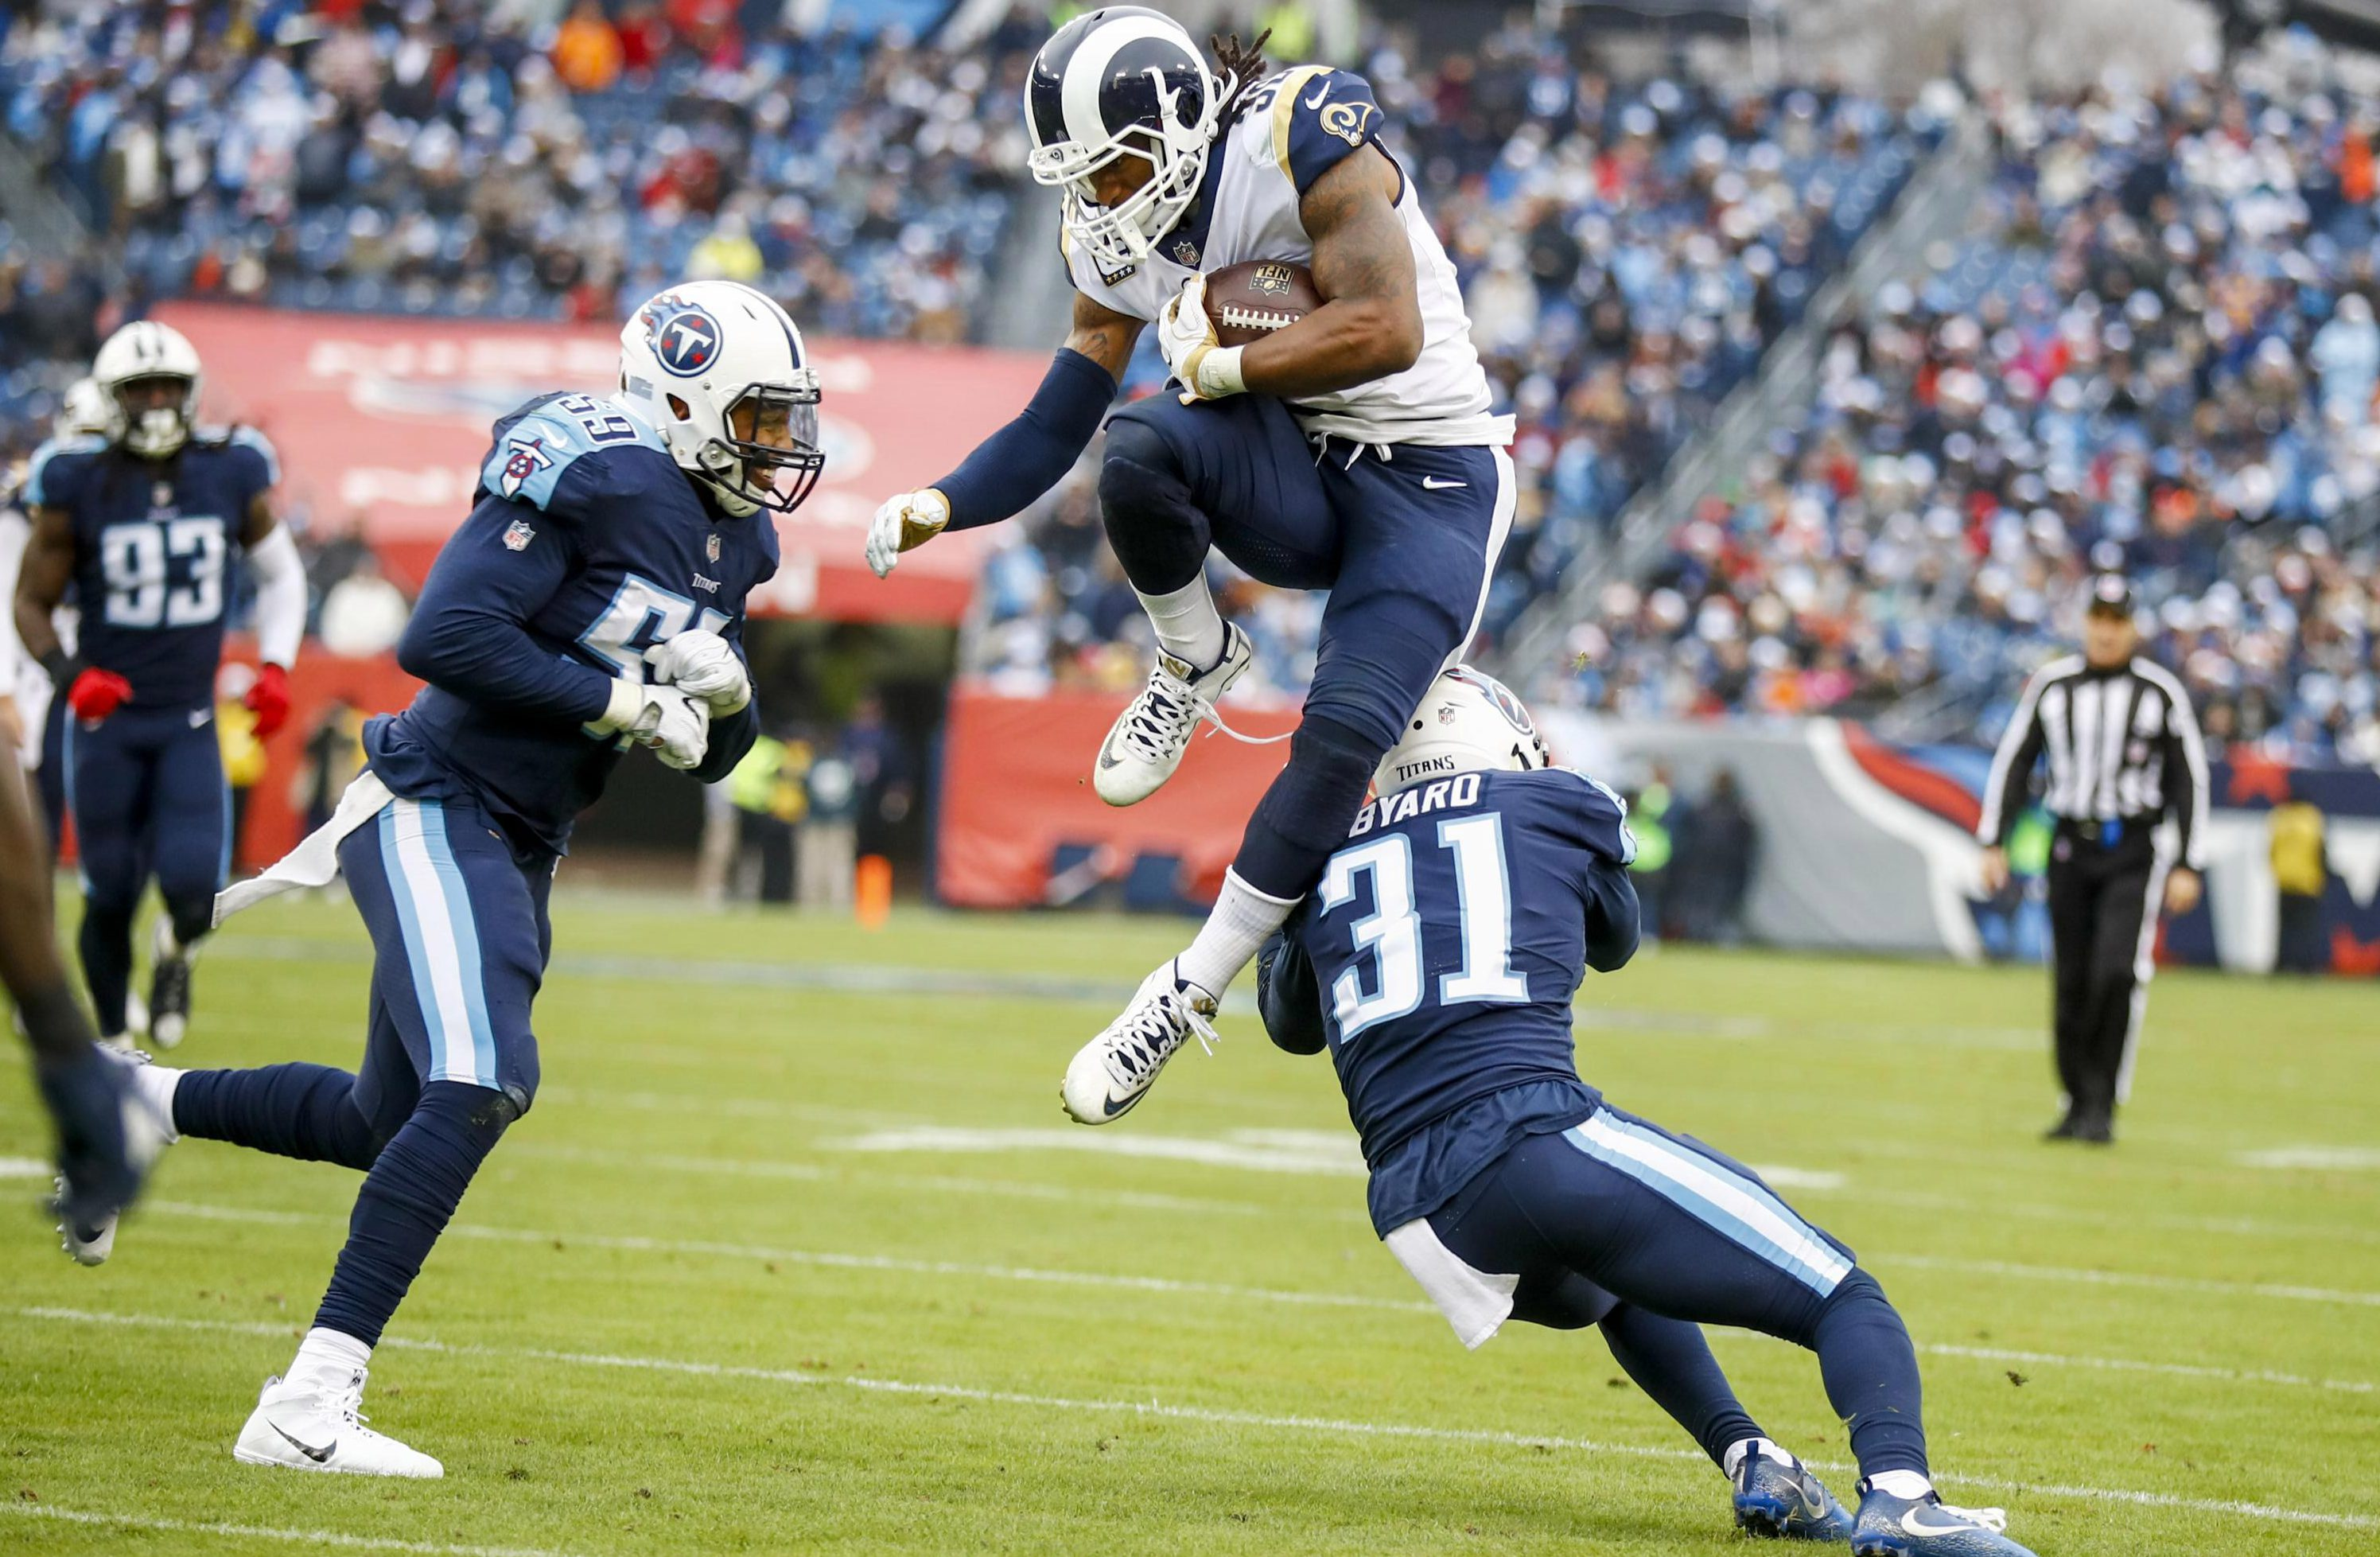 Todd Gurley has been in sensational form to lead the Rams to the playoffs